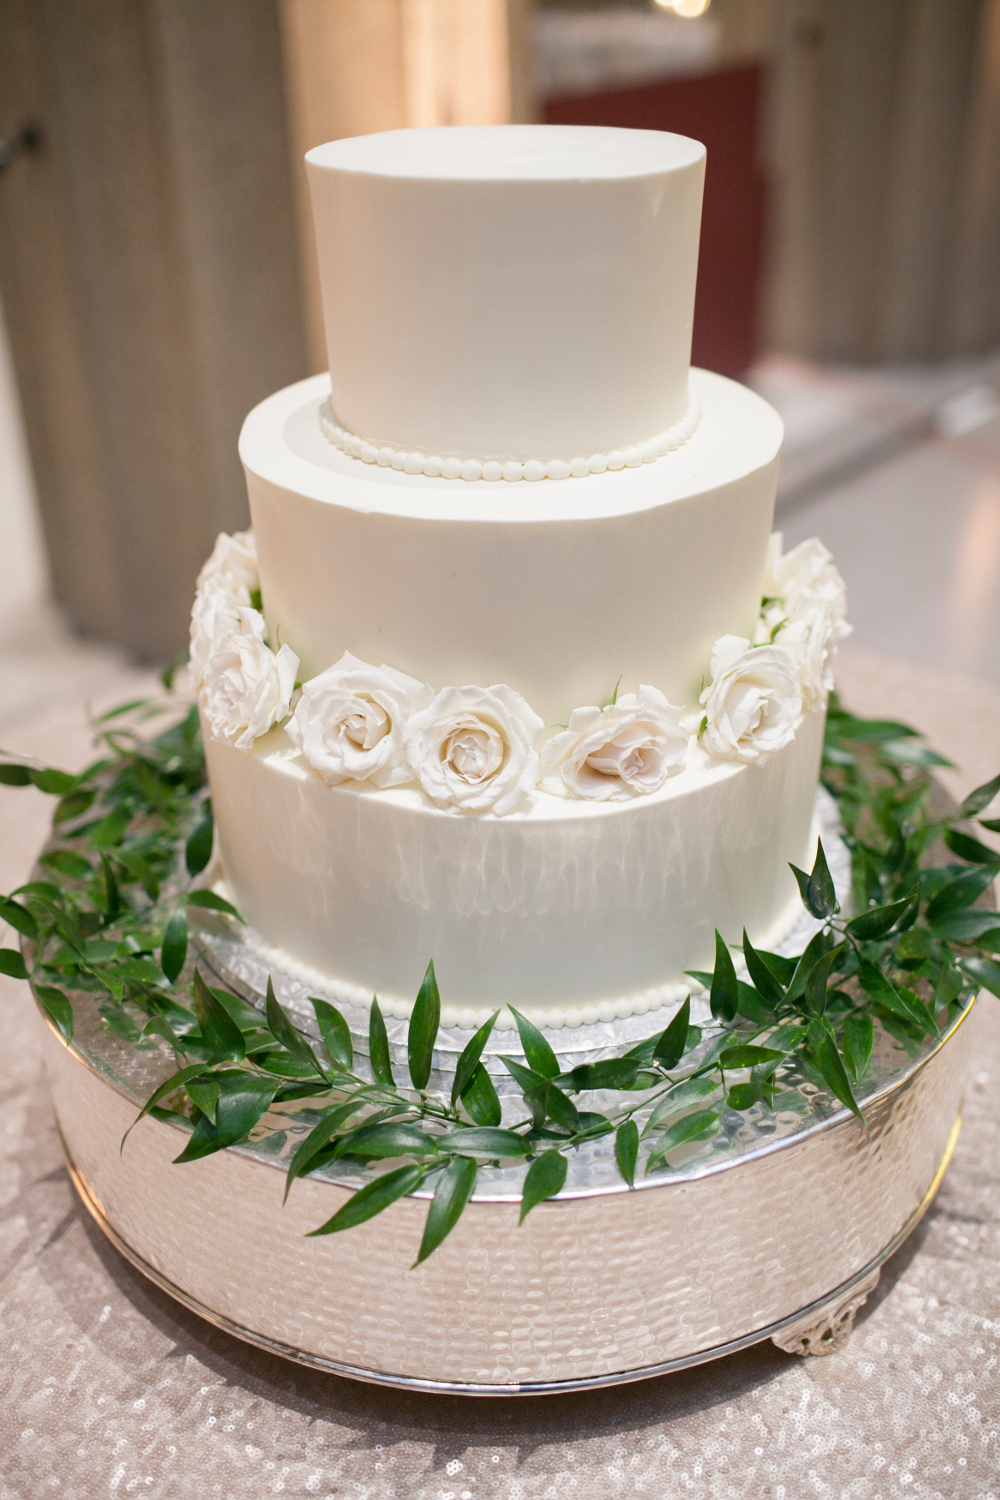 White 3 tier cakes with roses and greenery (Hannah Elaine Photography)